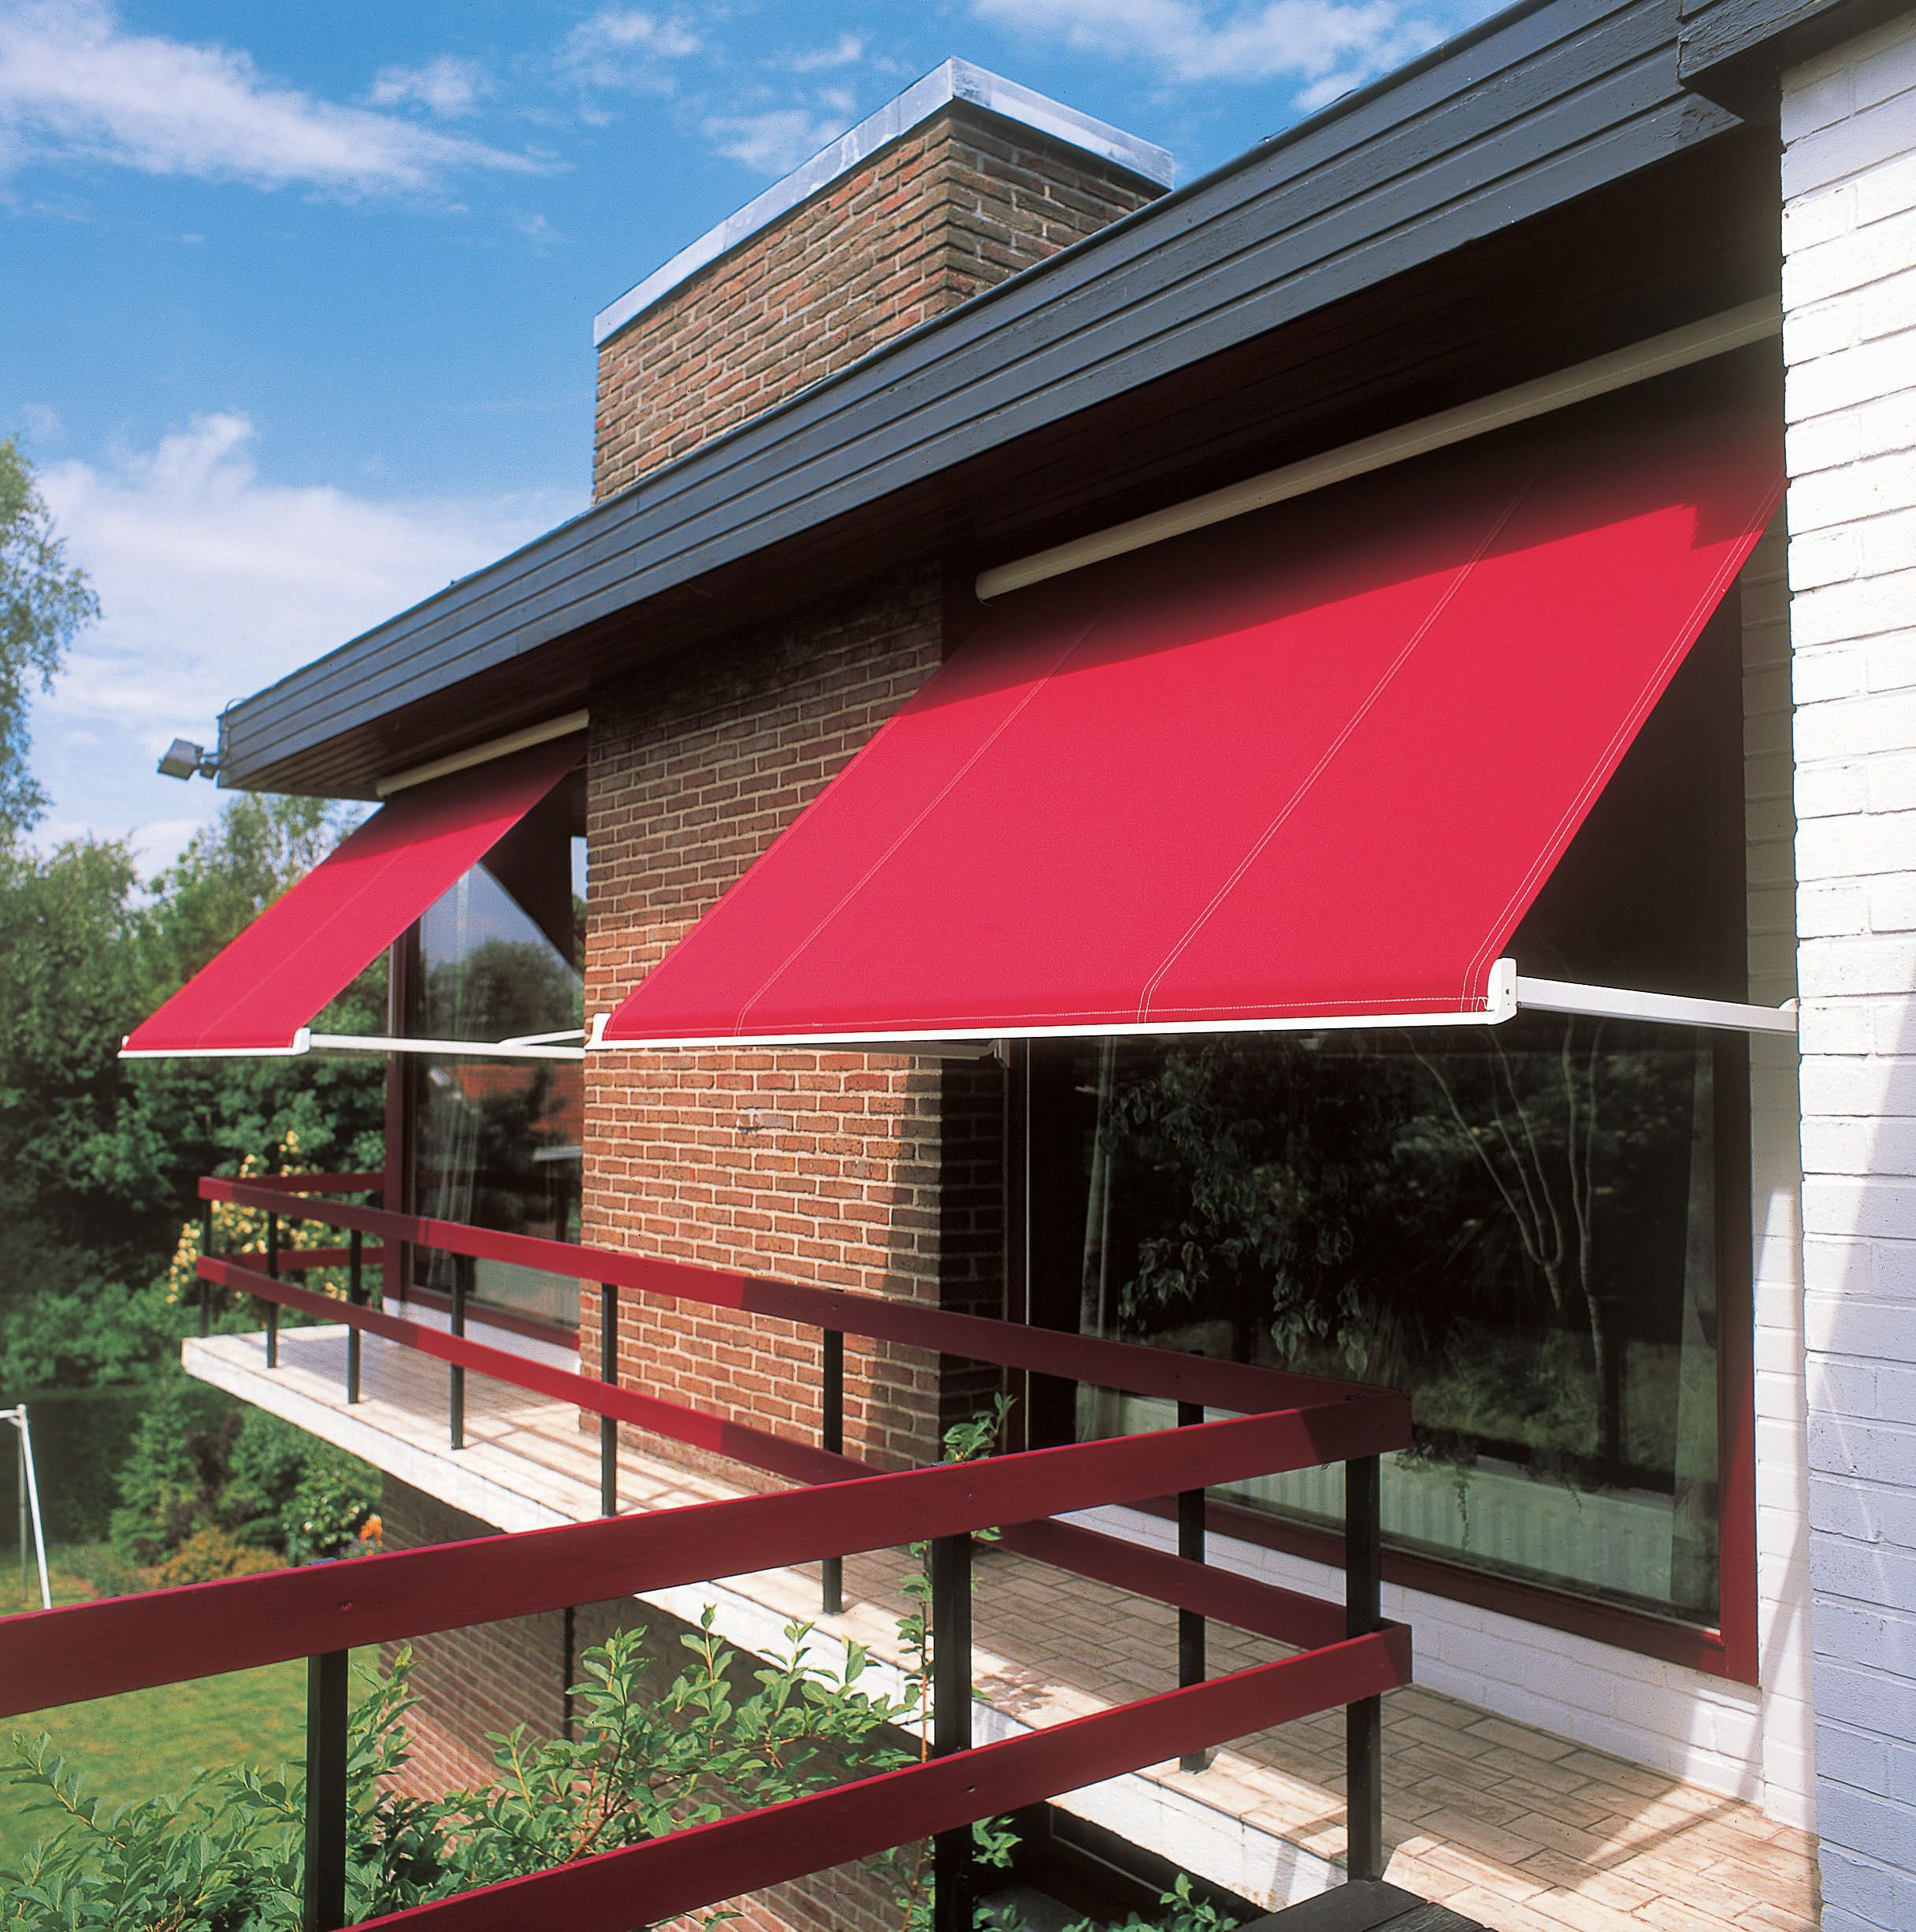 Markilux Drop Arm Awnings Can Be Supplied And Installed By Swr Installations Install Awning Window Exterior Outdoor Pergola Awning Sliding Shutters